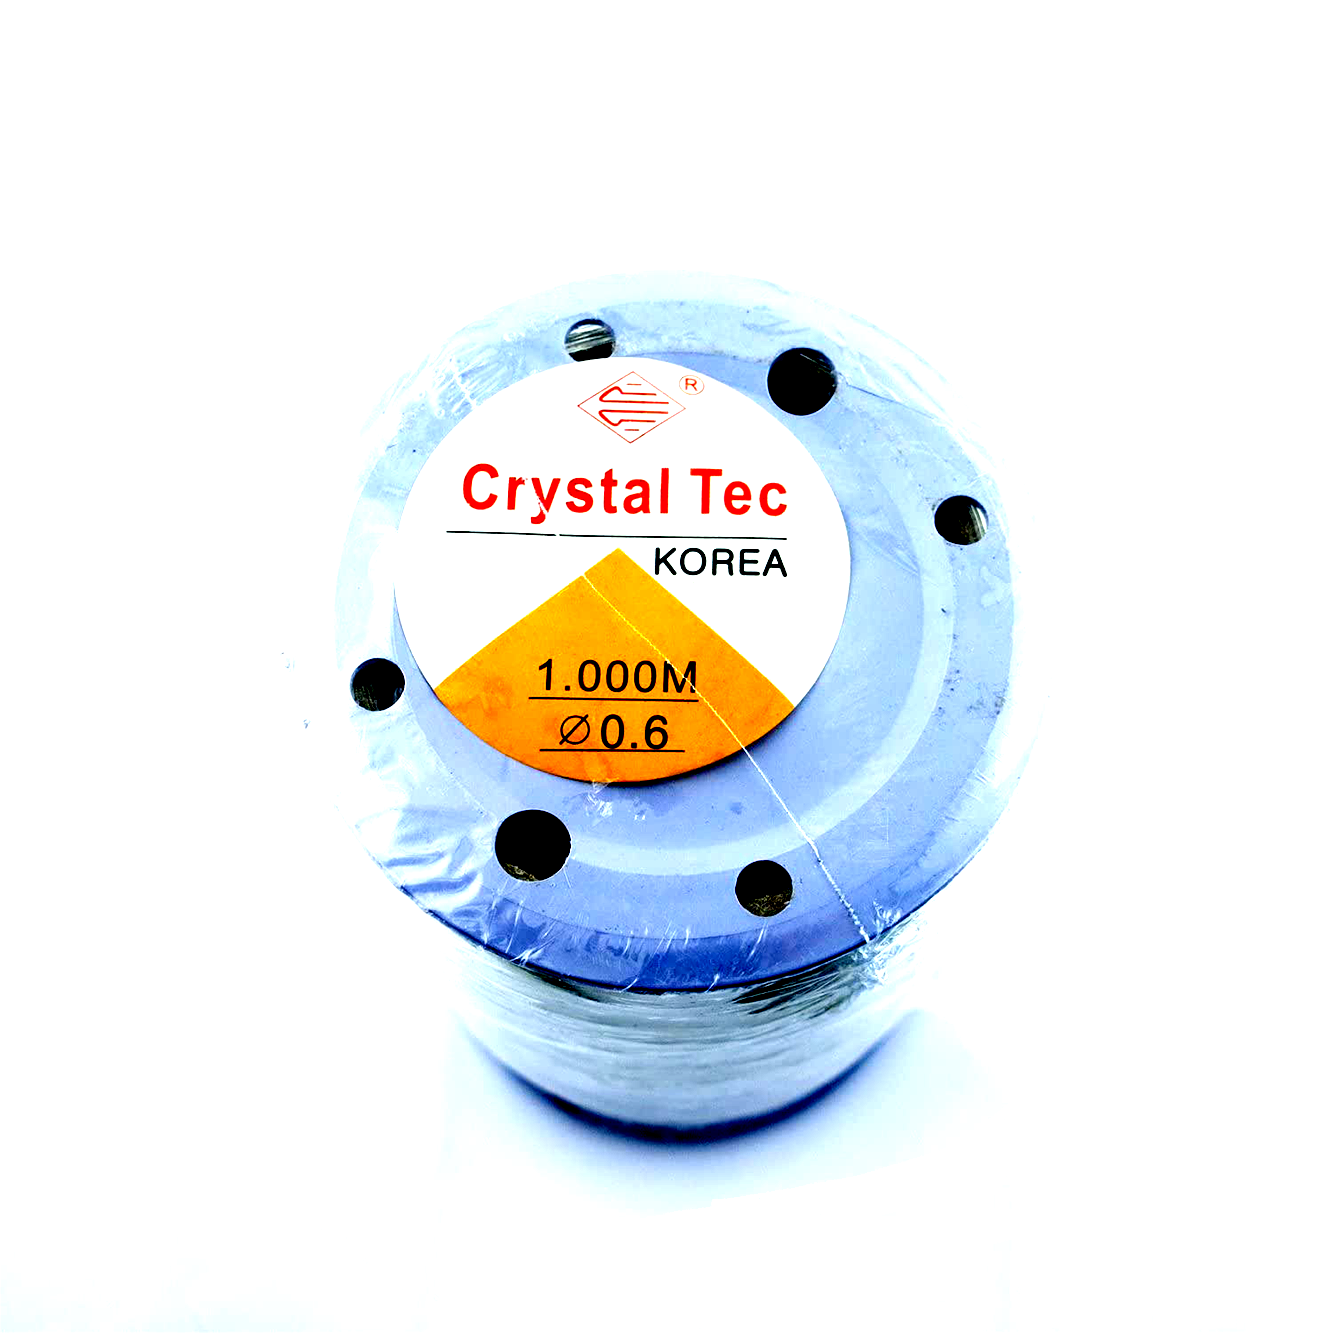 *New Arrival* Crystal Tec transparent stretchy cord in bulk quantity. The full roll contains 1000 meters. Available in 0.6mm, 0.8mm, 1.0mm and 1.2mm.